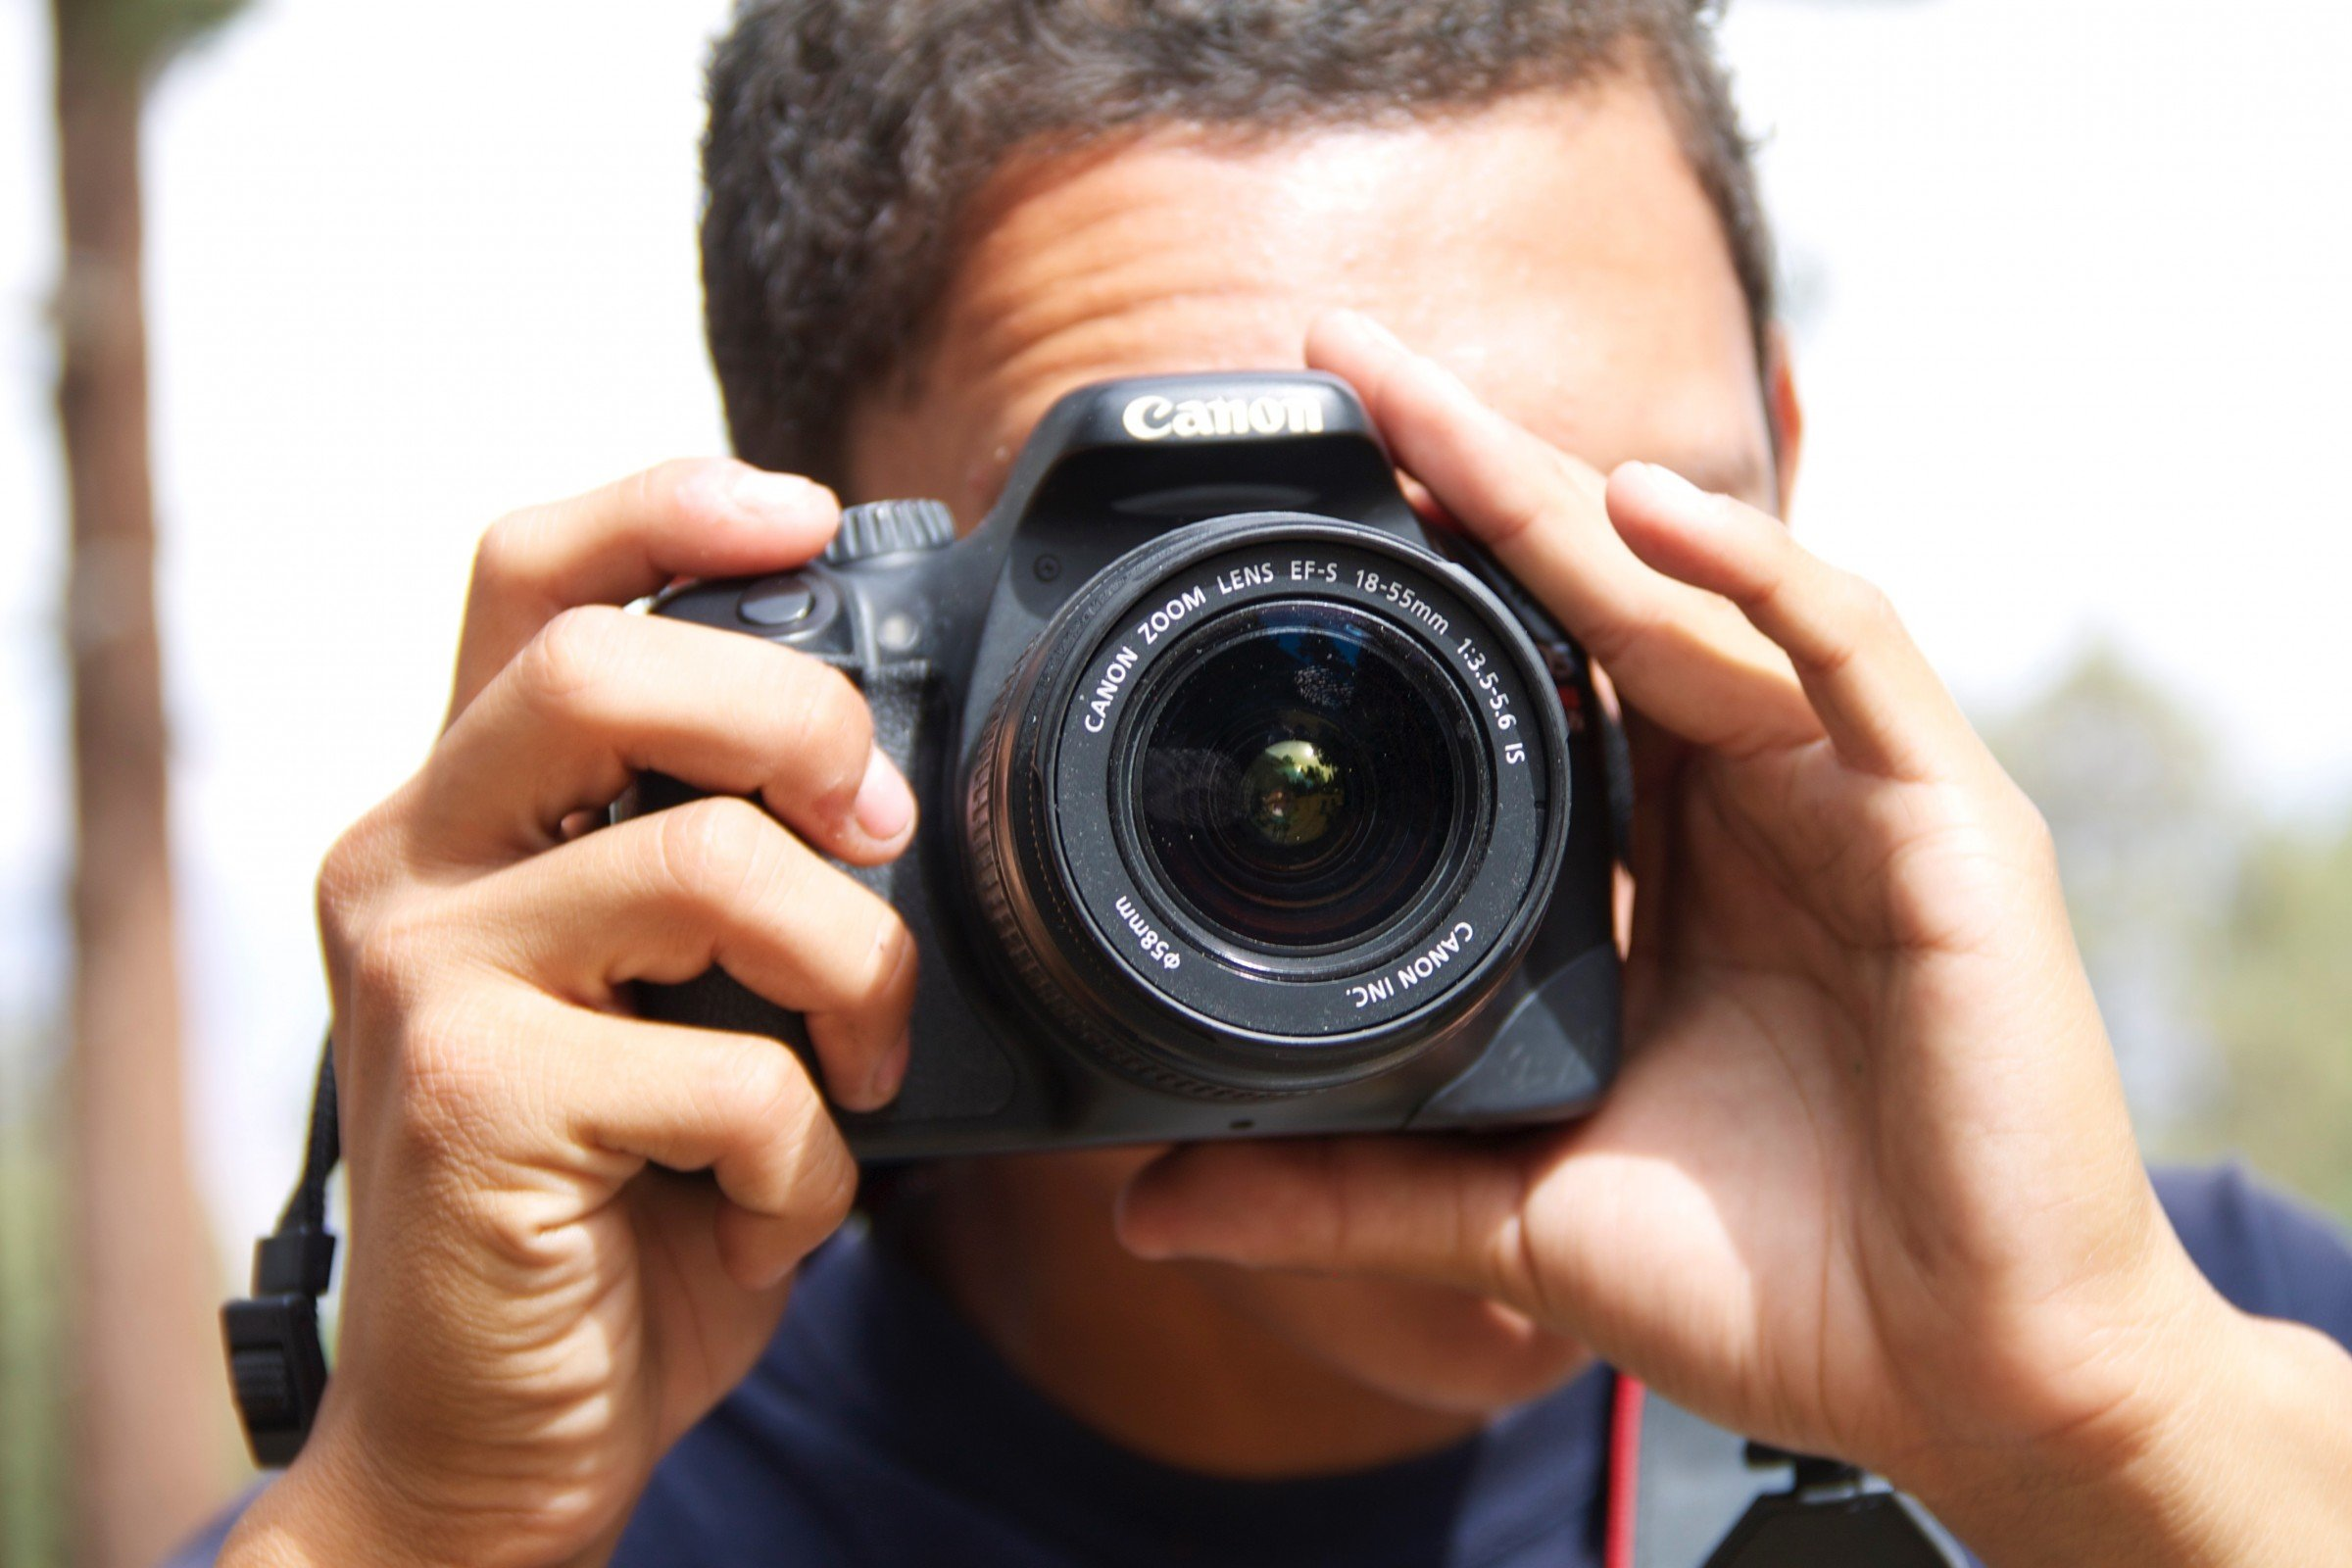 Man's Head Taking Picture with DLSR Camera